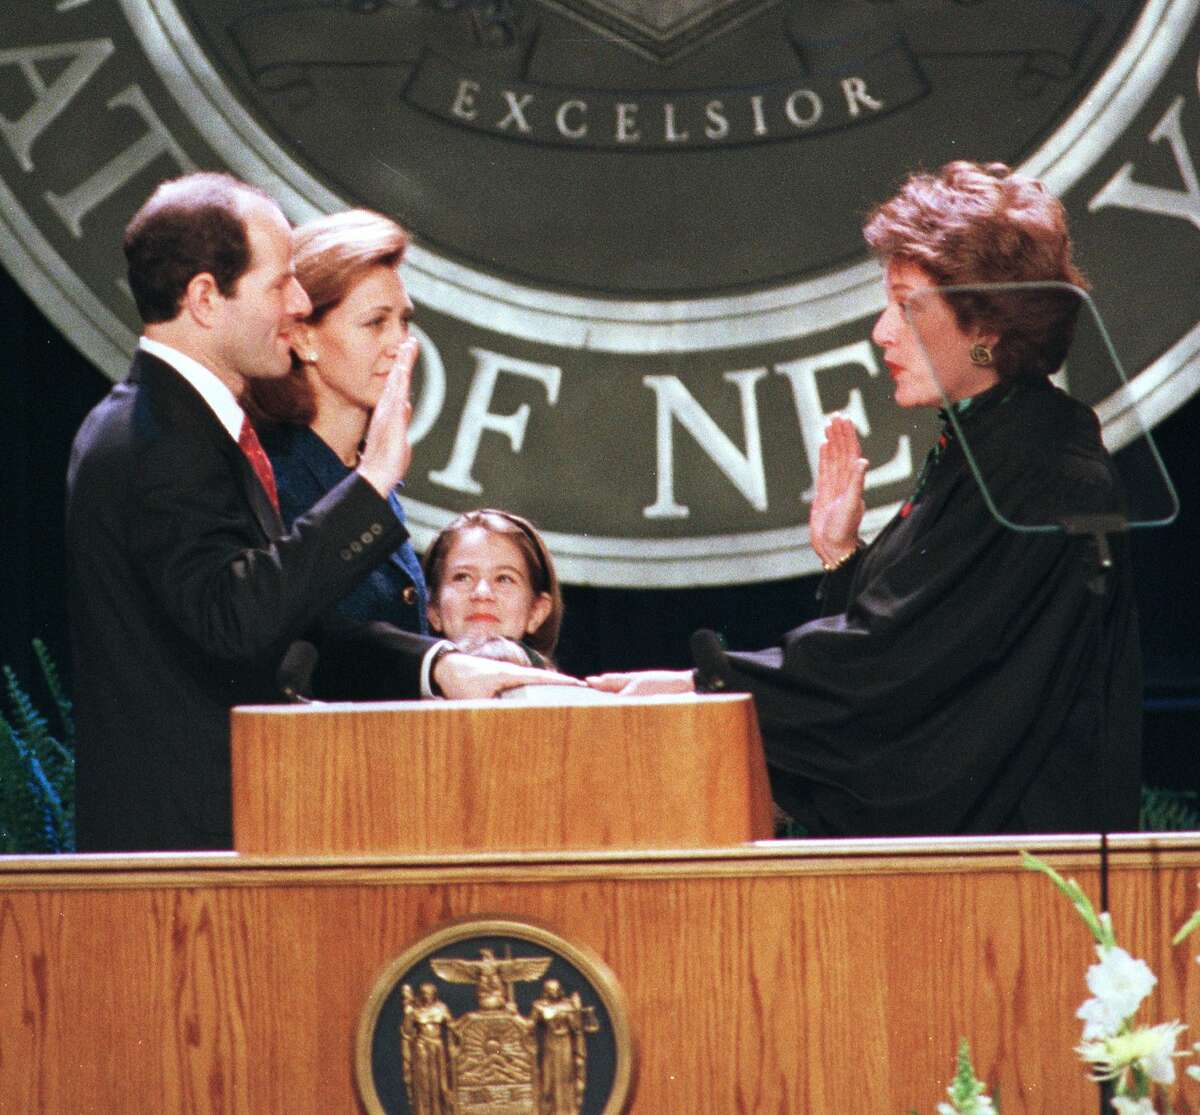 Attorney General Eliot Spitzer takes the oath of office from Court of Appeals Chief Judge Judith Kaye as his wife Silda and his oldest daughter look on Friday Jan. 1, 1999, at the Empire State Plaza Convention Center in Albany. (Skip Dickstein/Times Union)